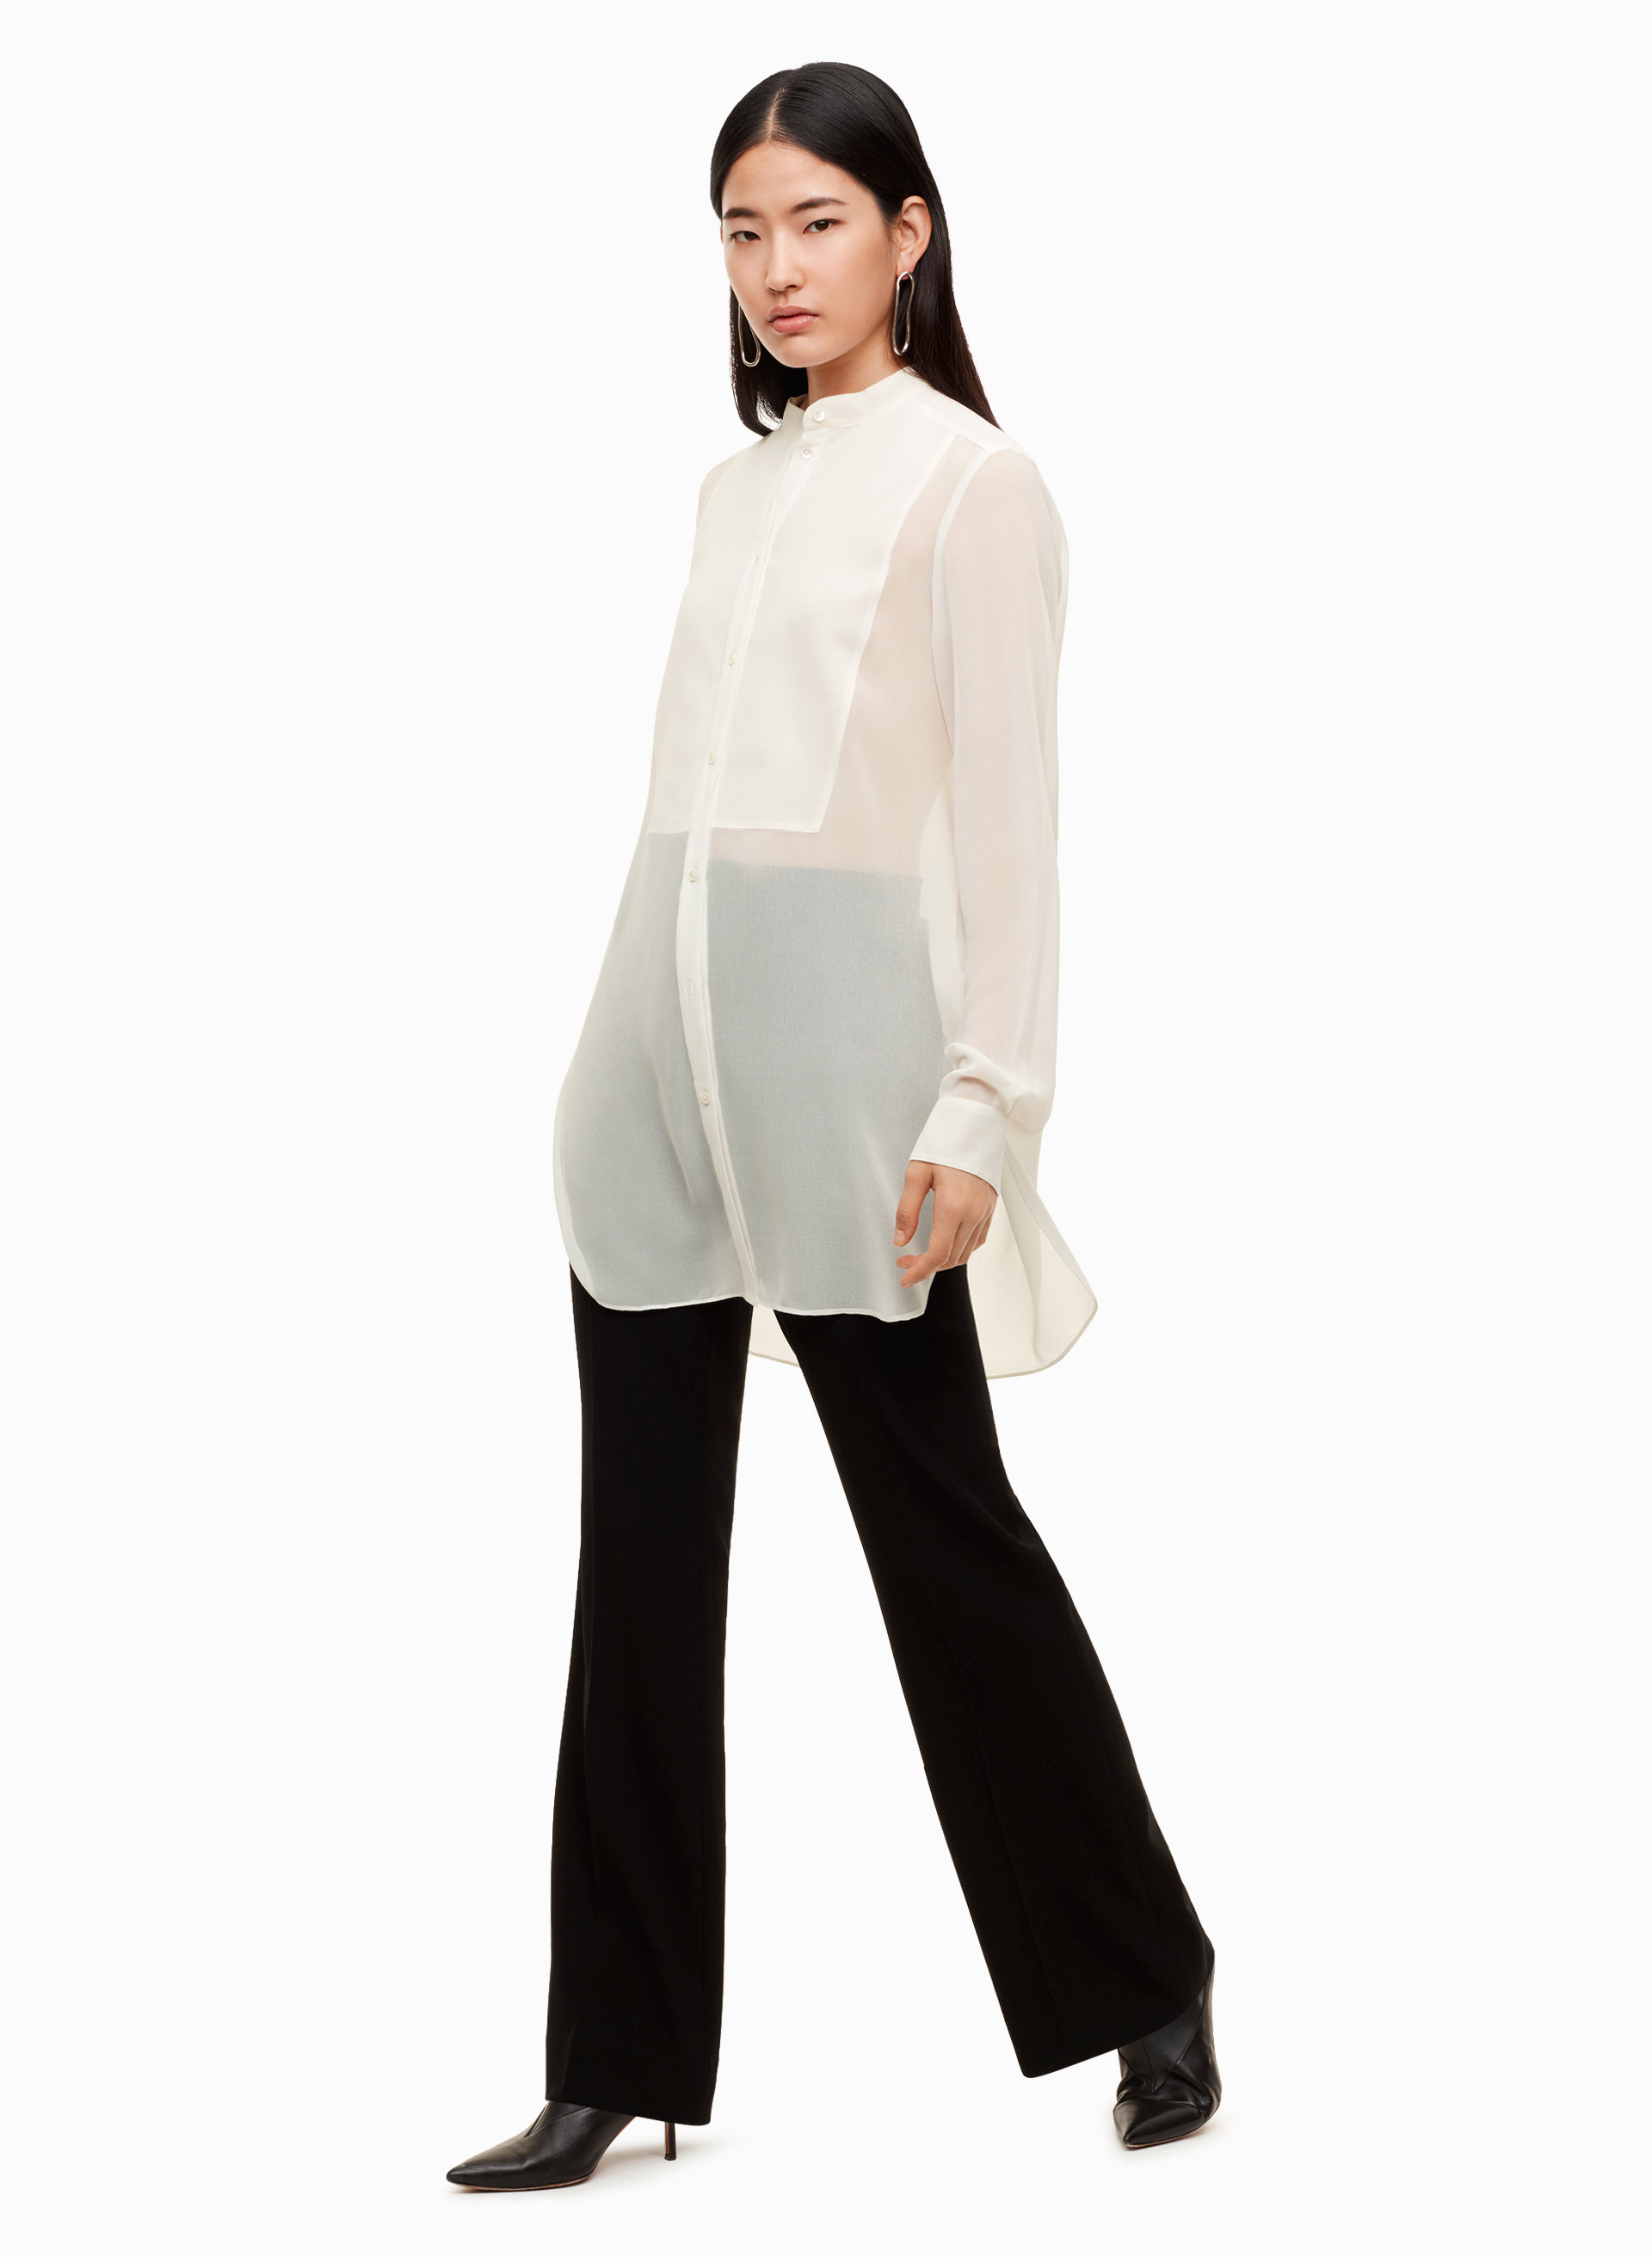 Semi Formal Attire Pants And Blouse